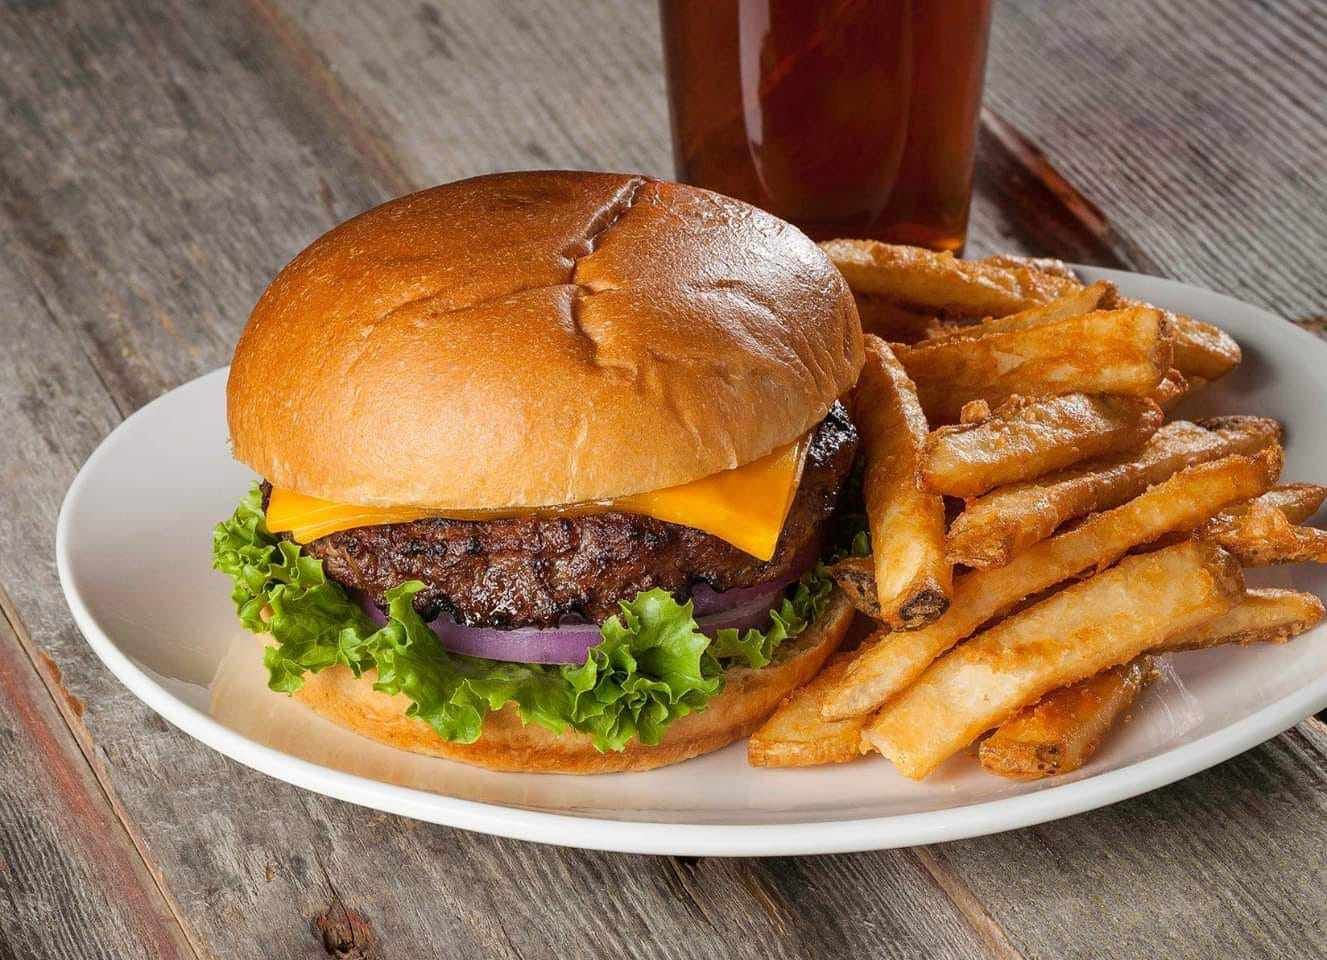 cheeseburger on a plate with large-cut french fries